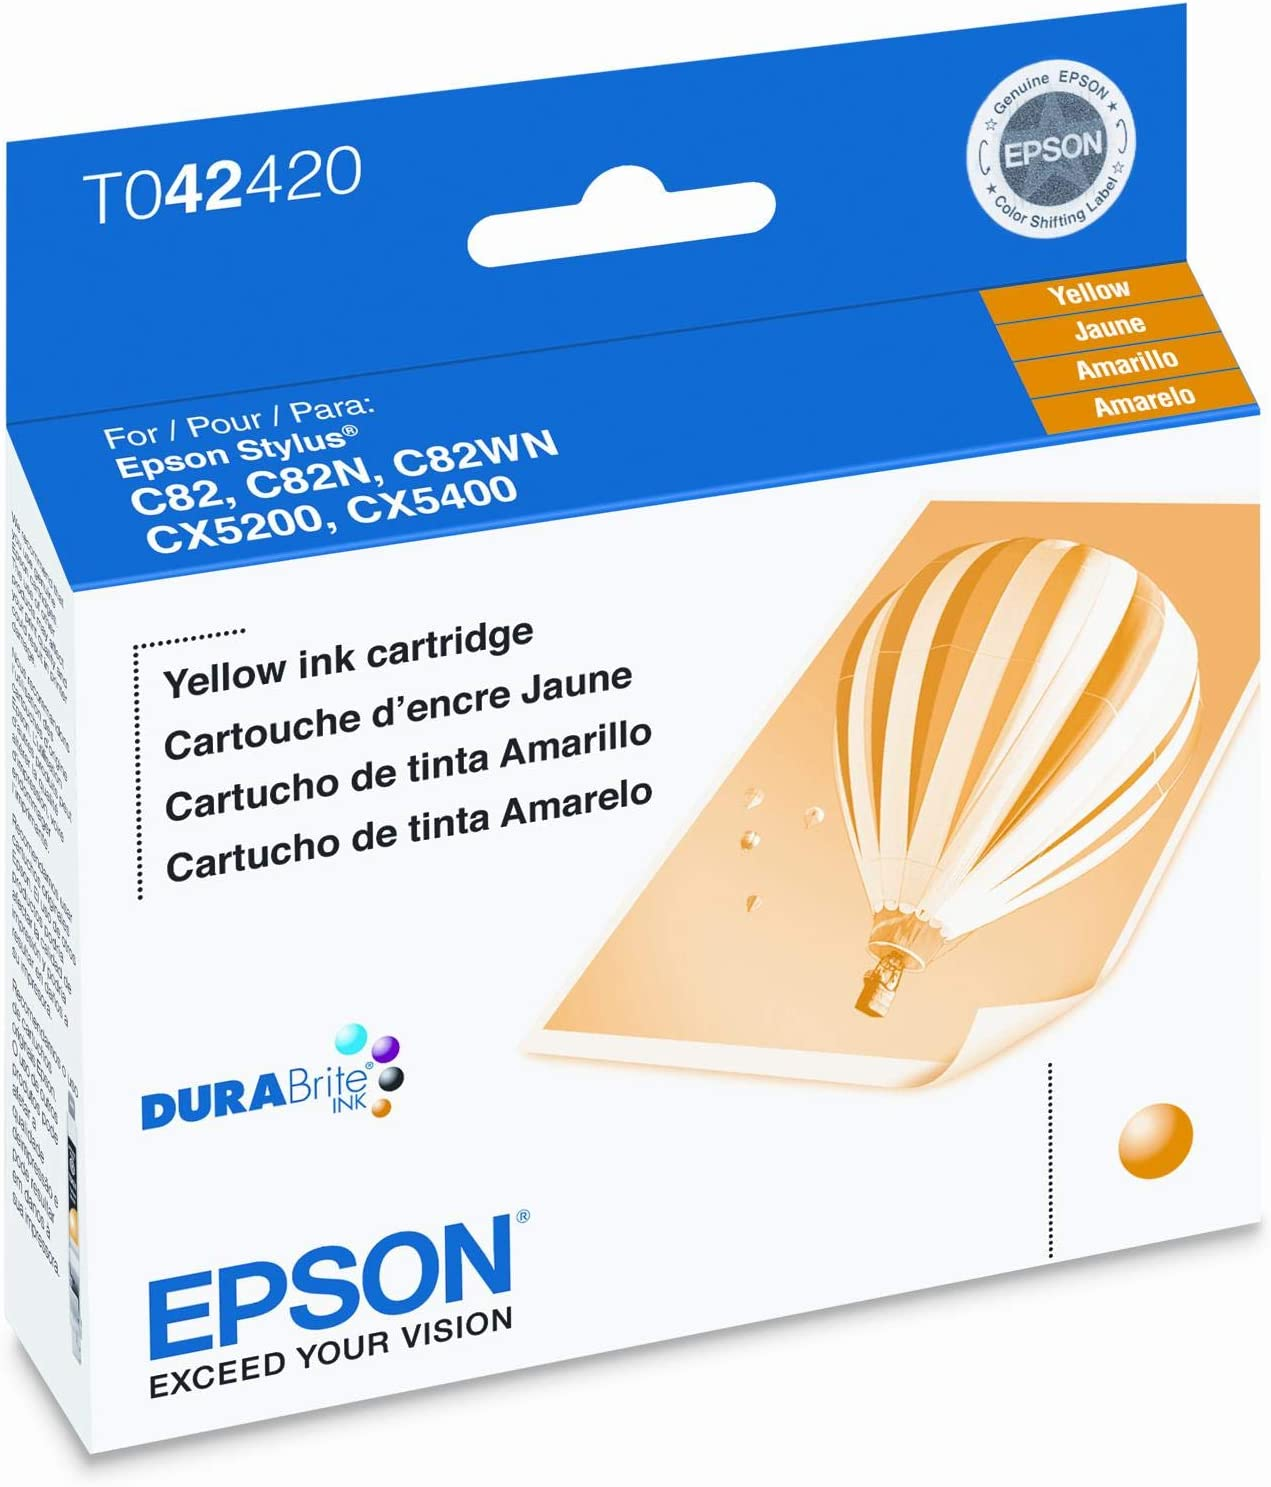 Epson T042420 Yellow Ink Cartridge for C82